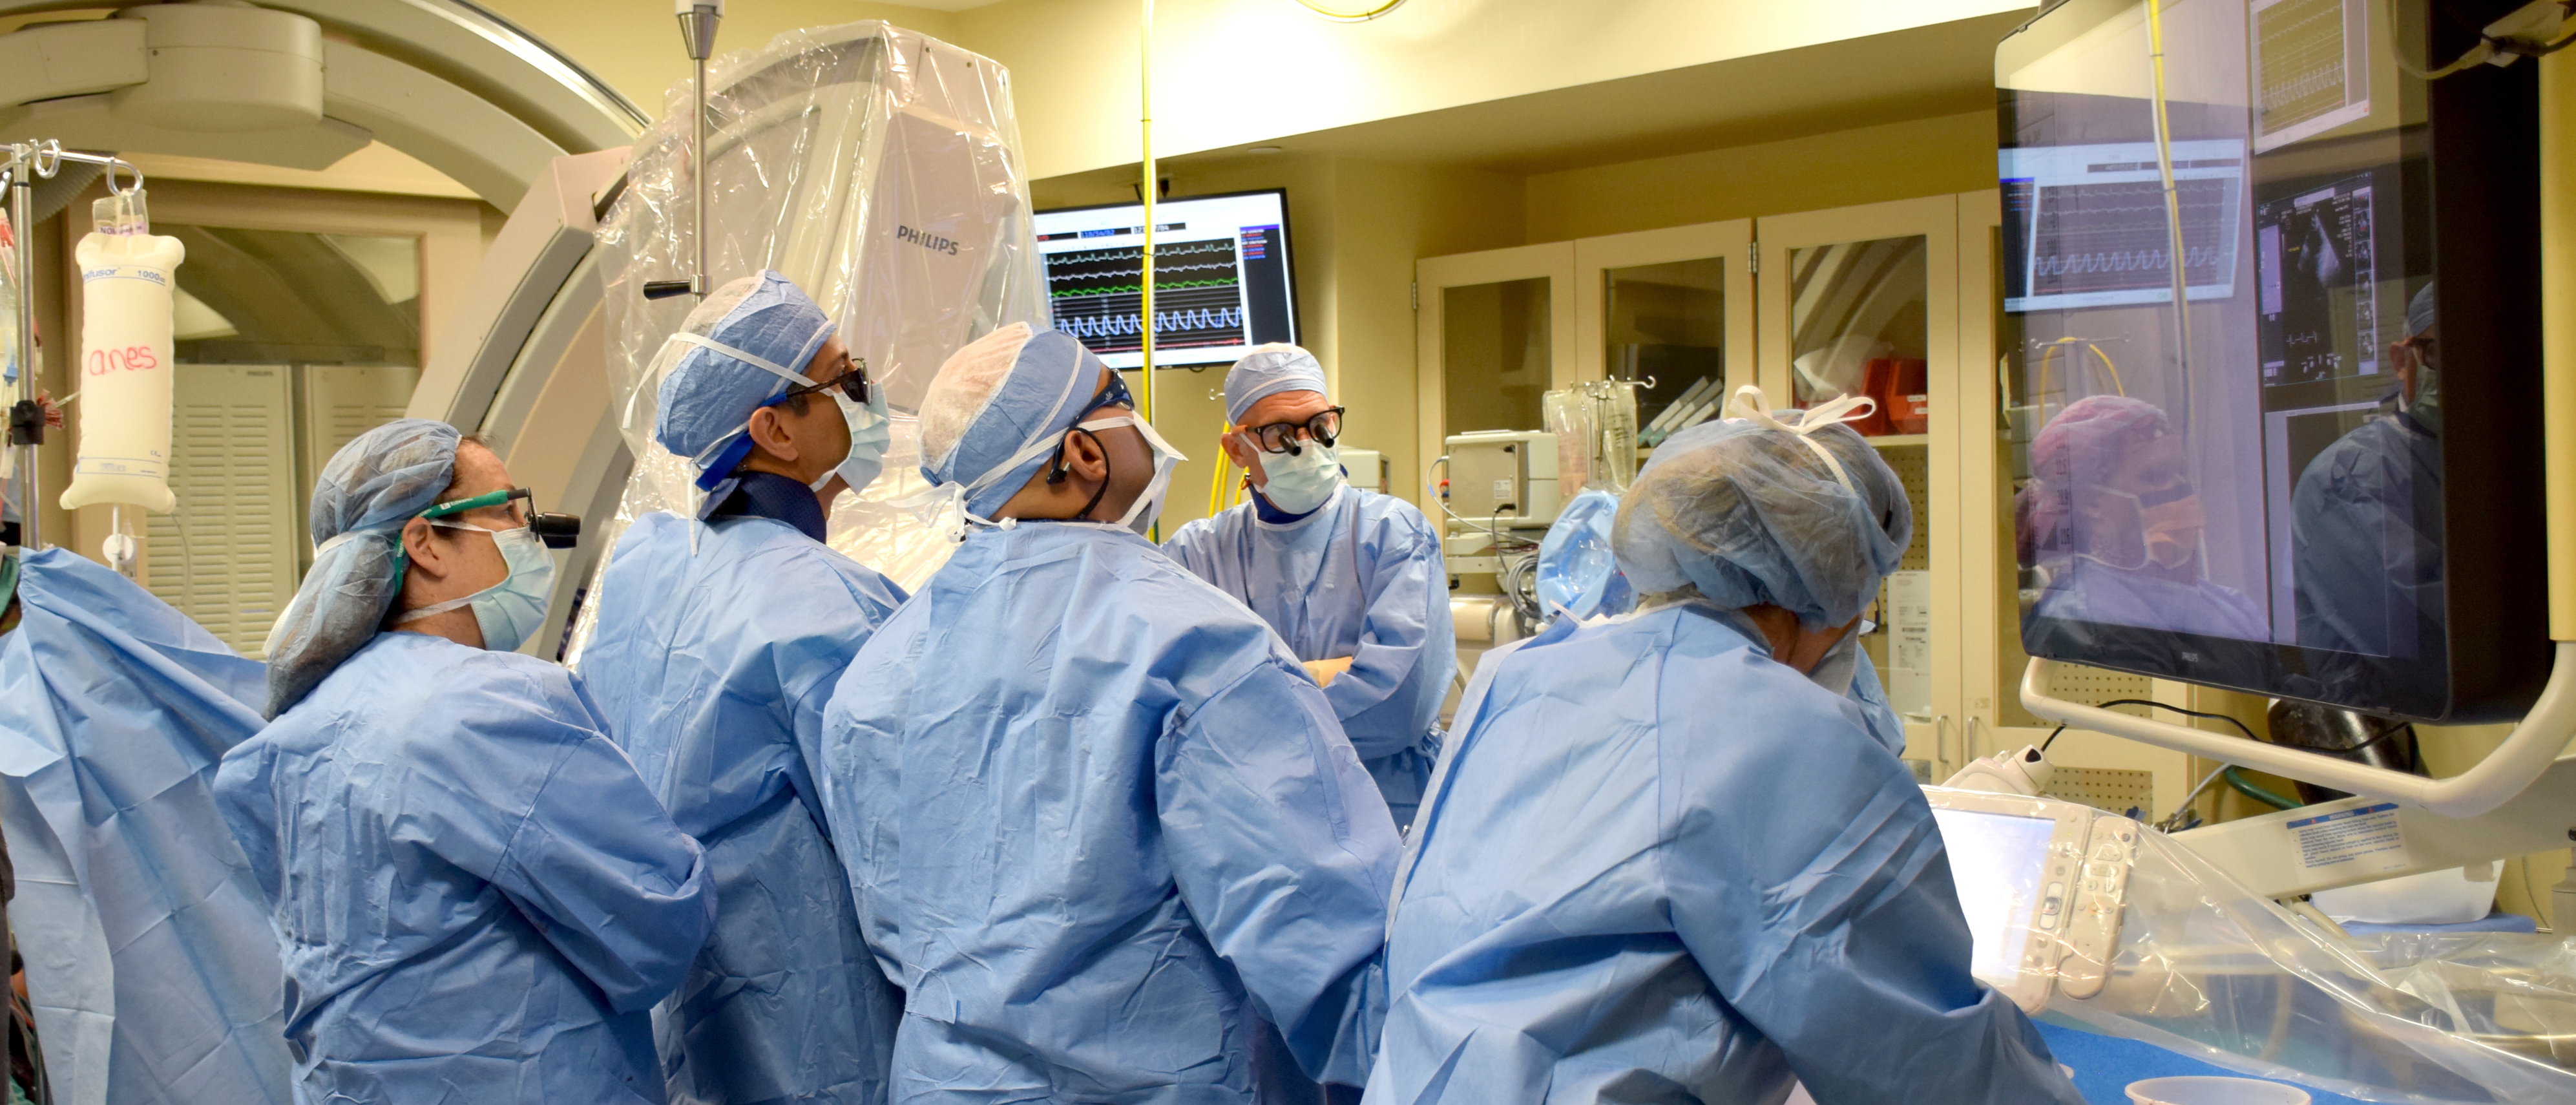 Dr. Haghighat and Dr. Patel collaborate with cardiothoracic surgeons from the Bay Medical Valve Program during a TAVR procedure